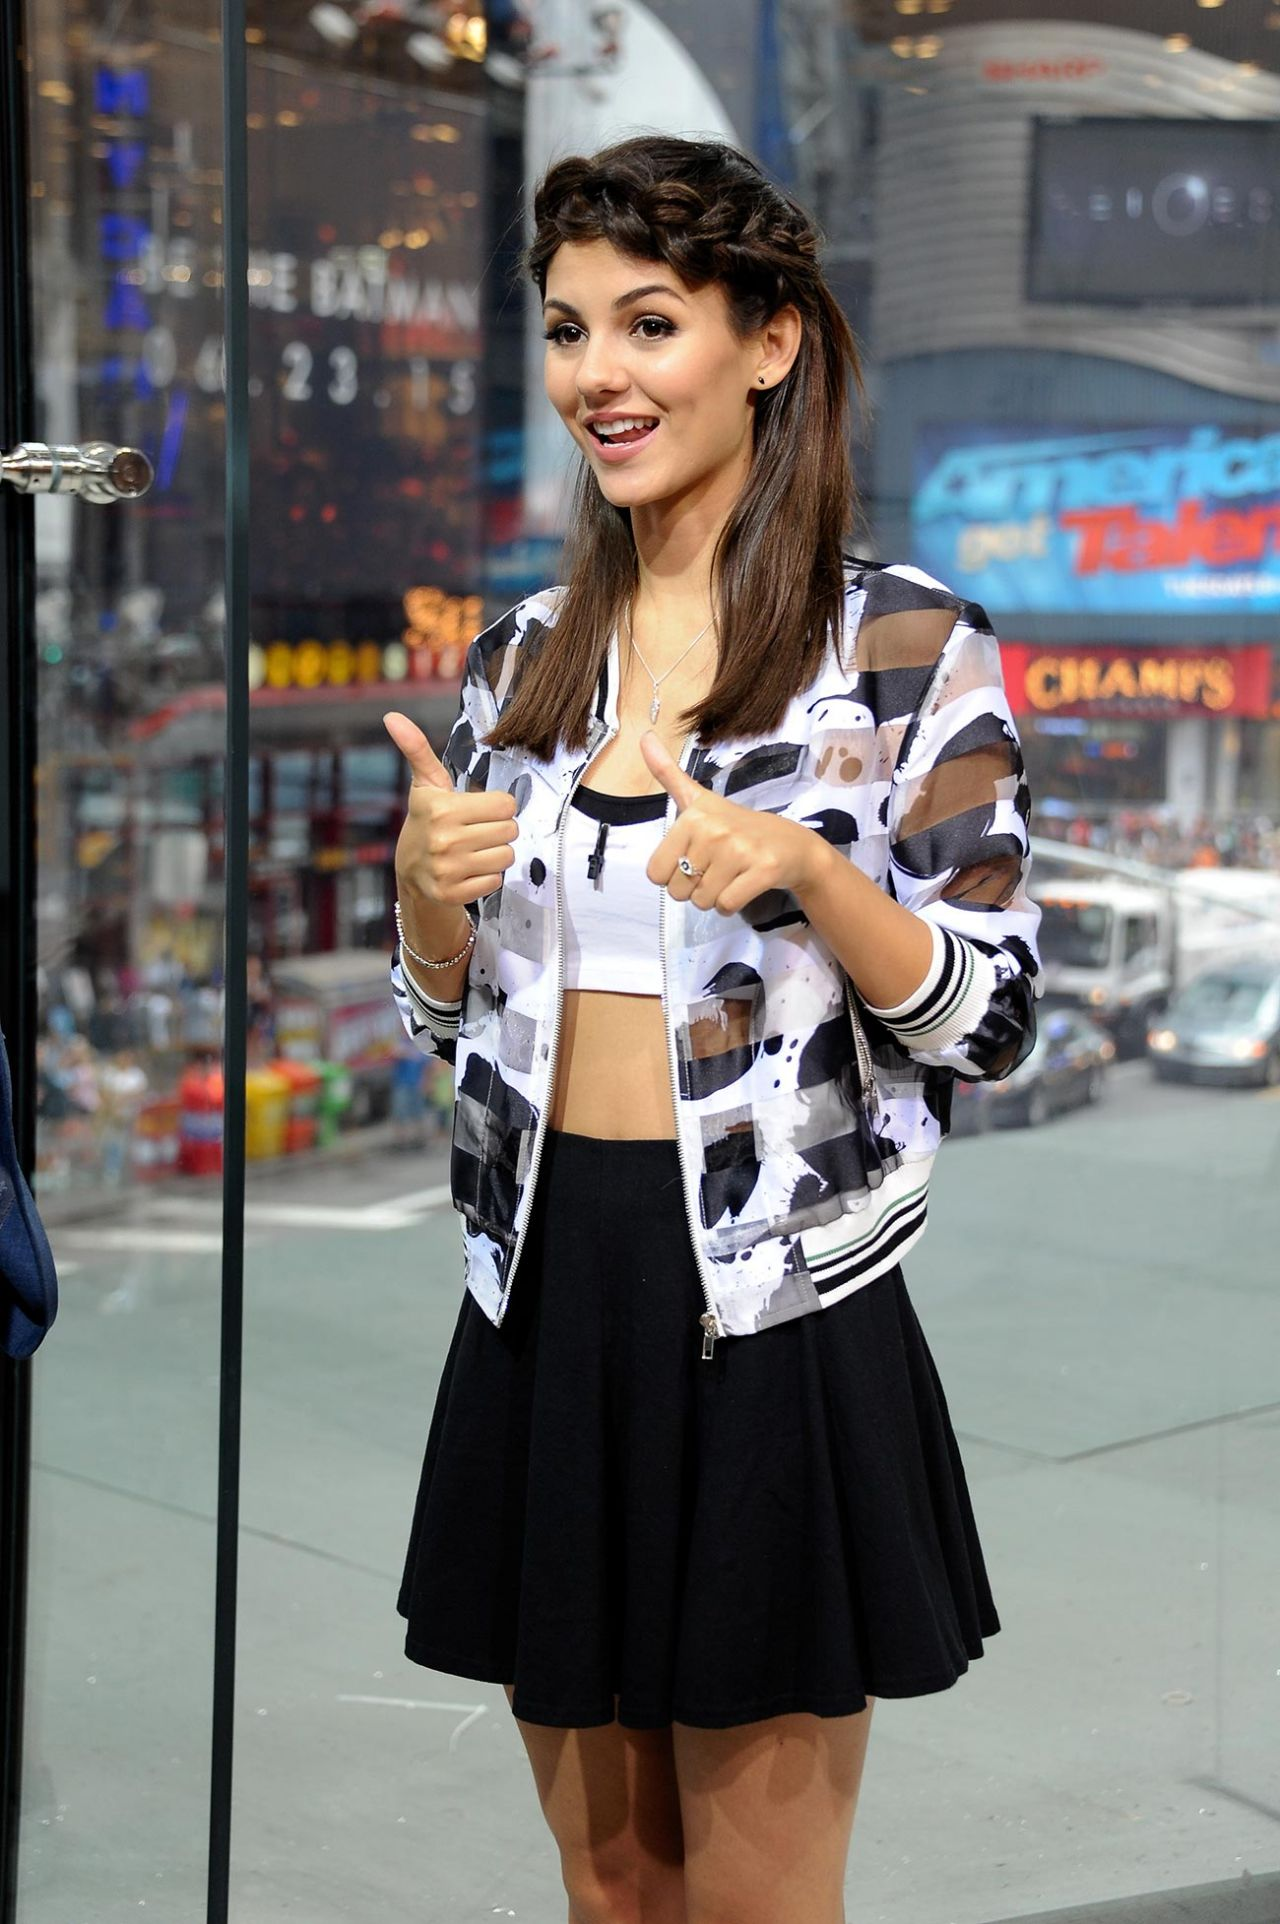 On Set Of 'Extra' In New York City